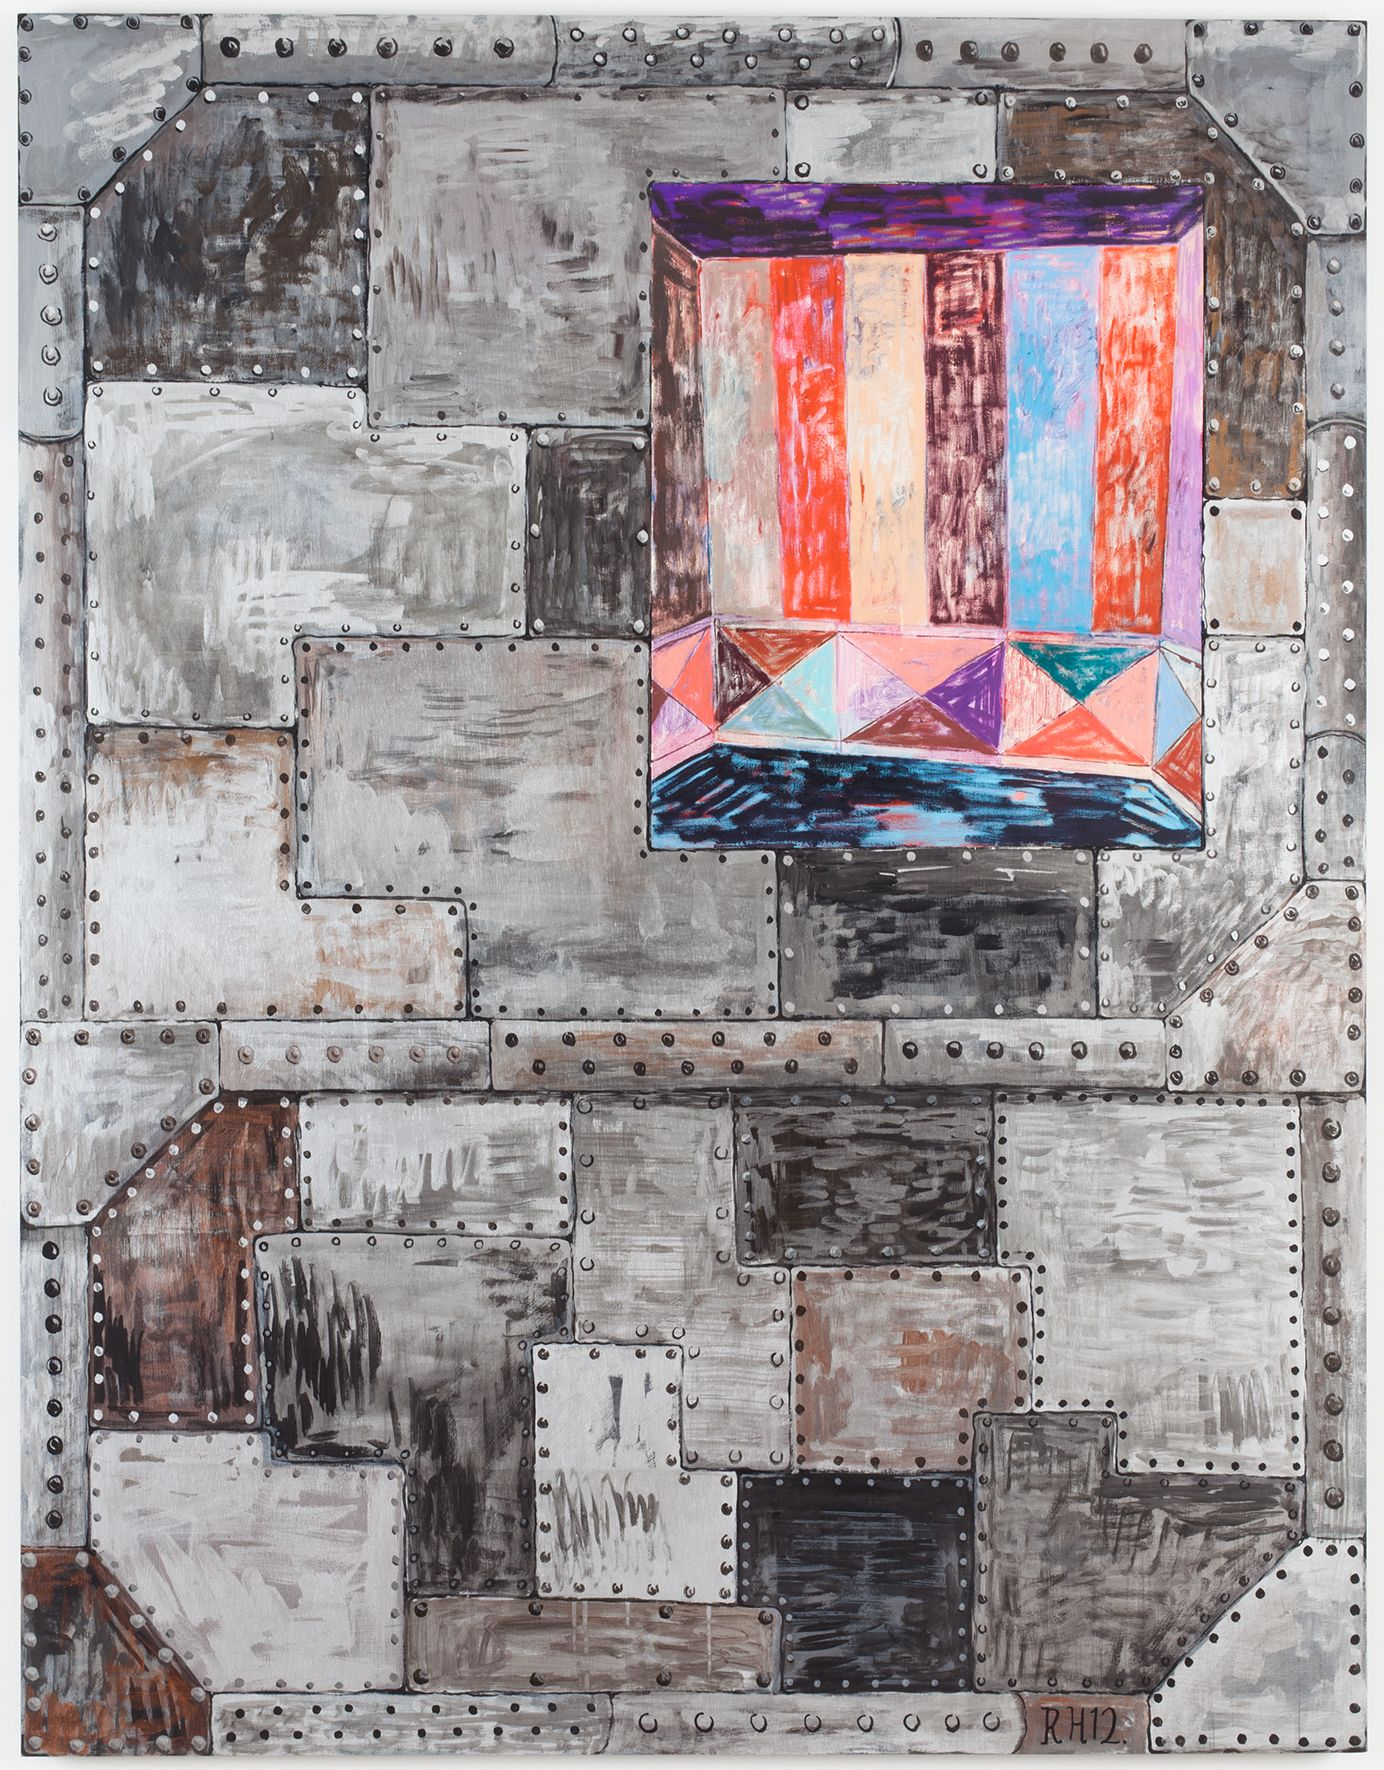 Vault #2, 2012, Oil on canvas and acrylic on panel, 63 x 49 x 1 5/8 inches (160 x 124.5 x 4.1 cm)